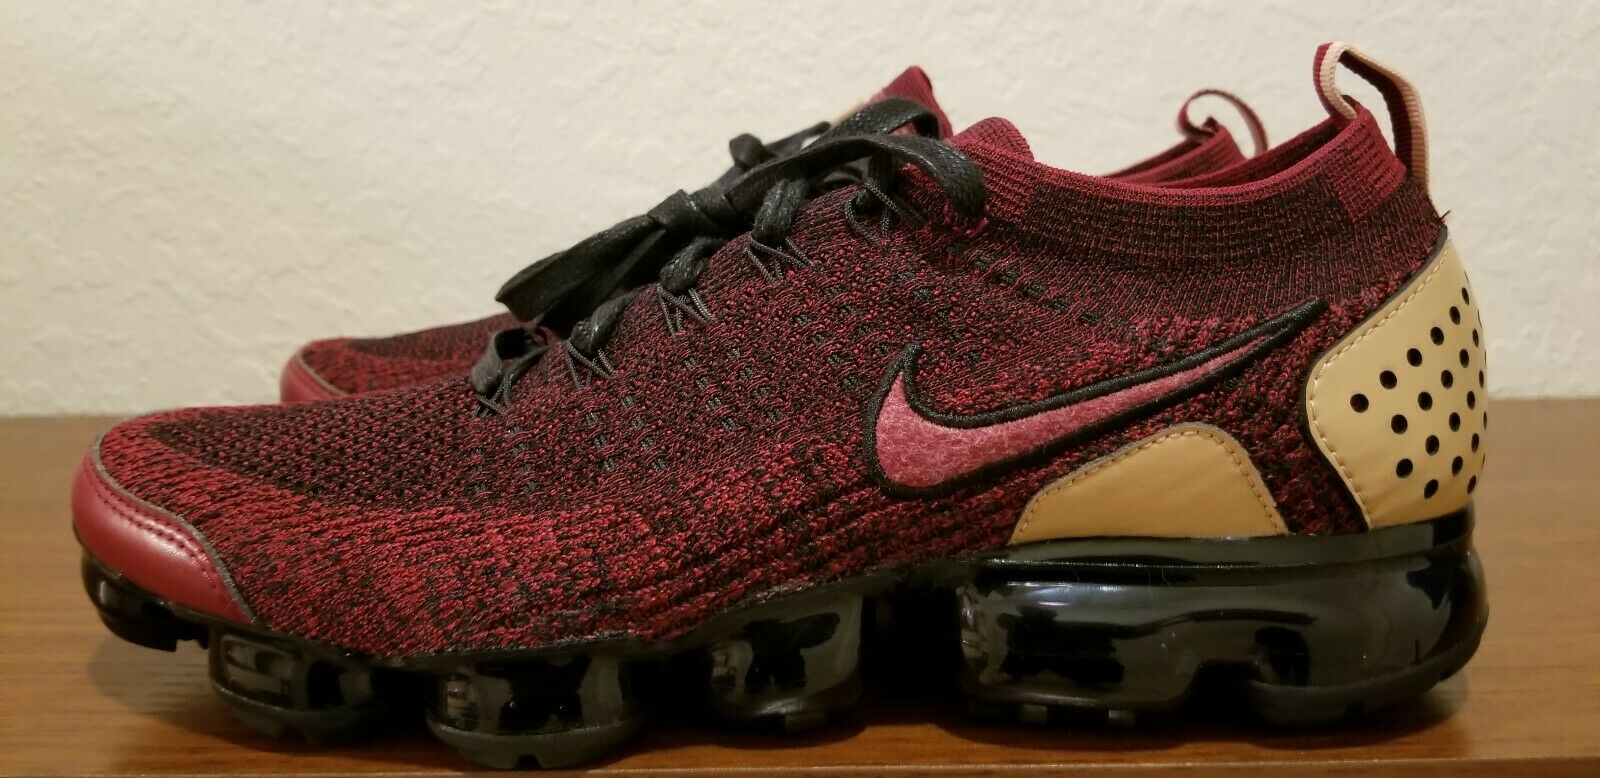 NEW Nike Nike Nike Air VaporMax Flyknit 2 NRG Team Red Black AT8955-600 Men's Size 11 761275